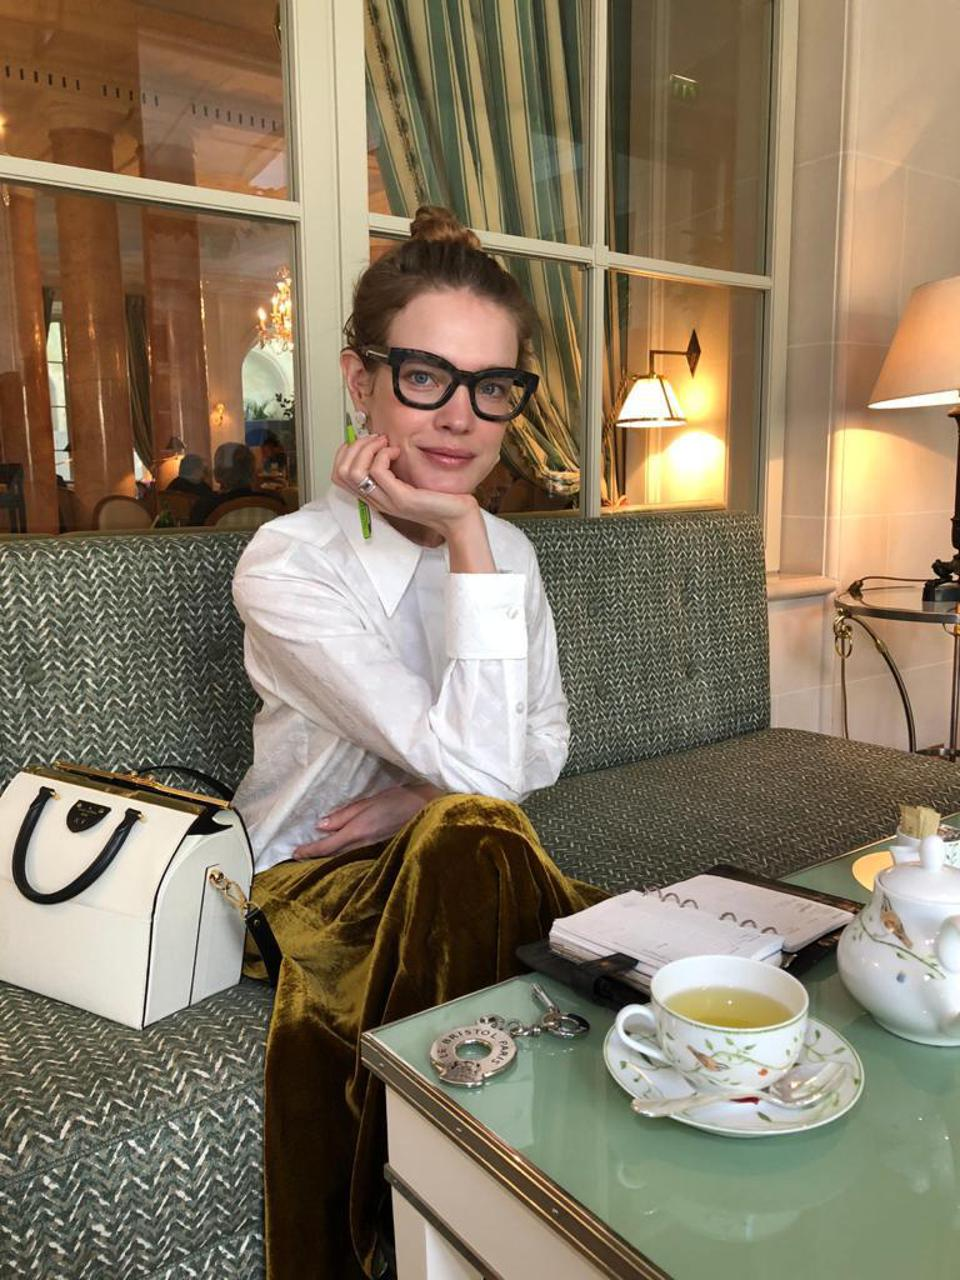 Natalia Vodianova is promoting her new business venture e-gree, an app for legal contracts, which she is bankrolling as an angel investor.